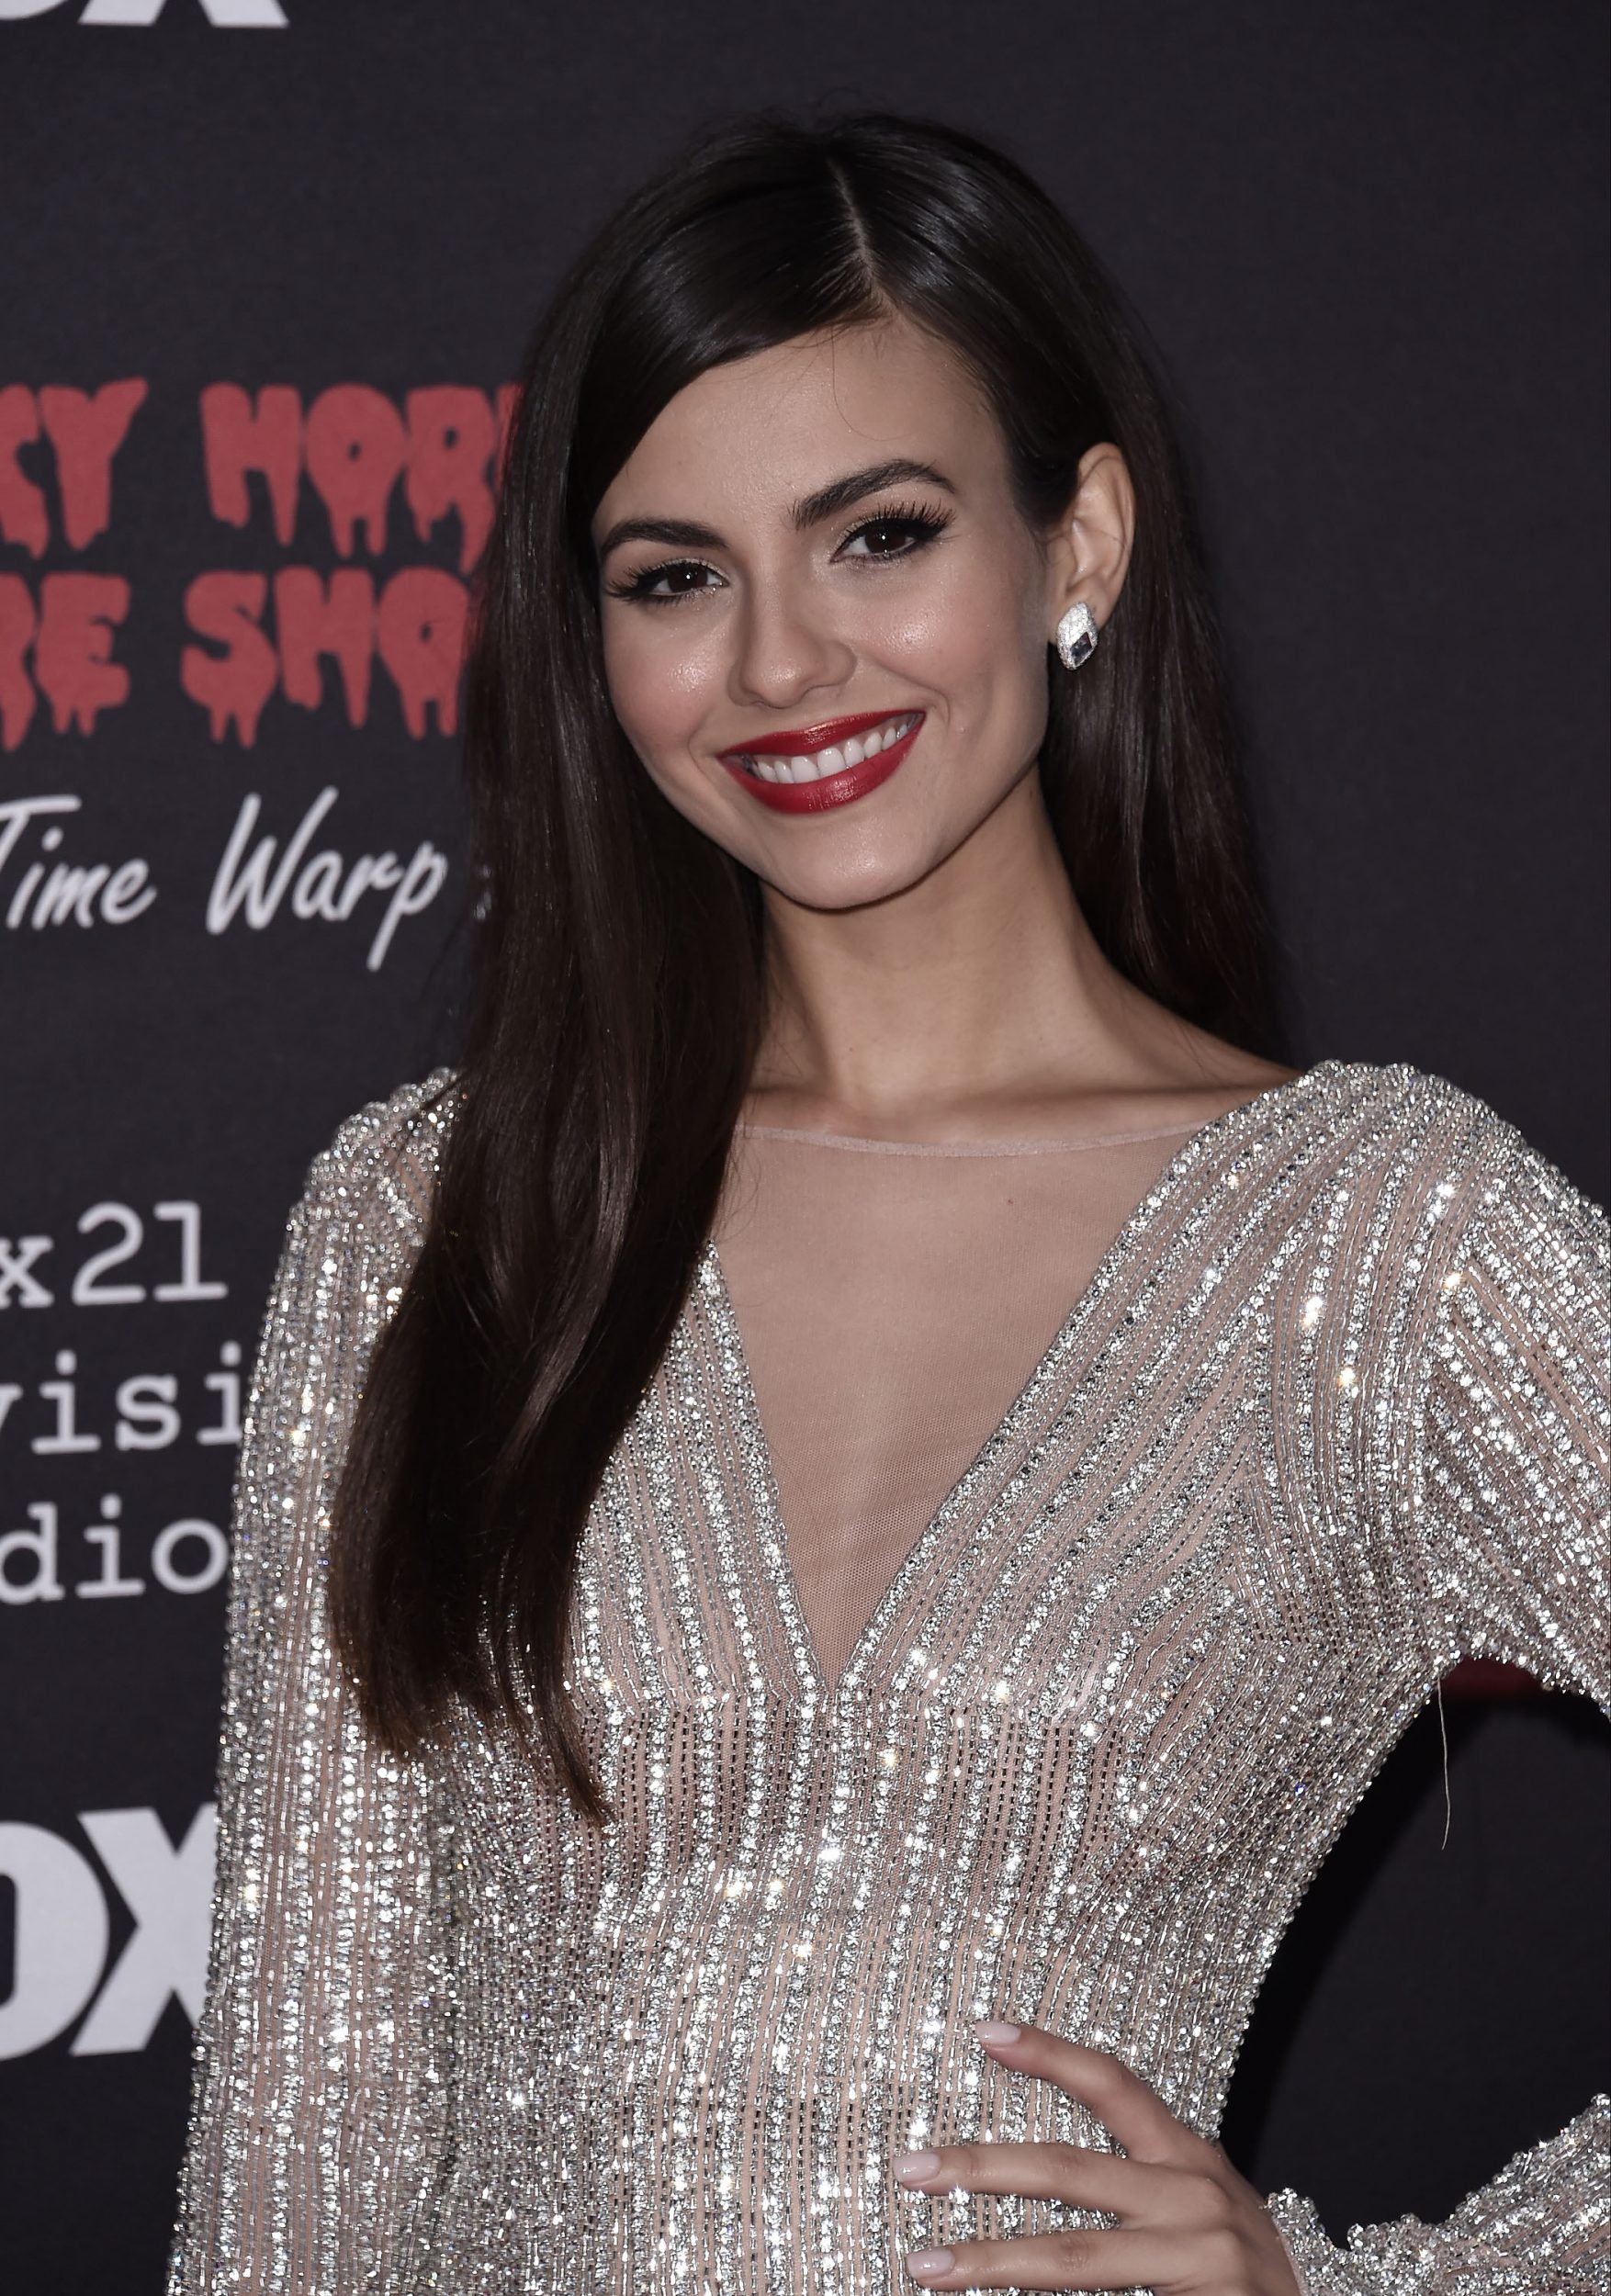 THE ROCKY HORROR PICTURE SHOW: Let's Do The Time Warp Again (and Transylvanians!): Cast member Victoria Justice arrives at THE ROCKY HORROR PICTURE SHOW: Let's Do The Time Warp Again (and Transylvanians!) premiere party red carpet at The Roxy on Thursday, Oct. 13, in Los Angeles, CA. THE ROCKY HORROR PICTURE SHOW: Let's Do The Time Warp Again (And Transylvanians!) premieres Thursday, Oct. 20 (8:00-10:00 PM ET/PT) on FOX. © 2016 FOX BROADCASTING CR: Scott Kirkland/FOX